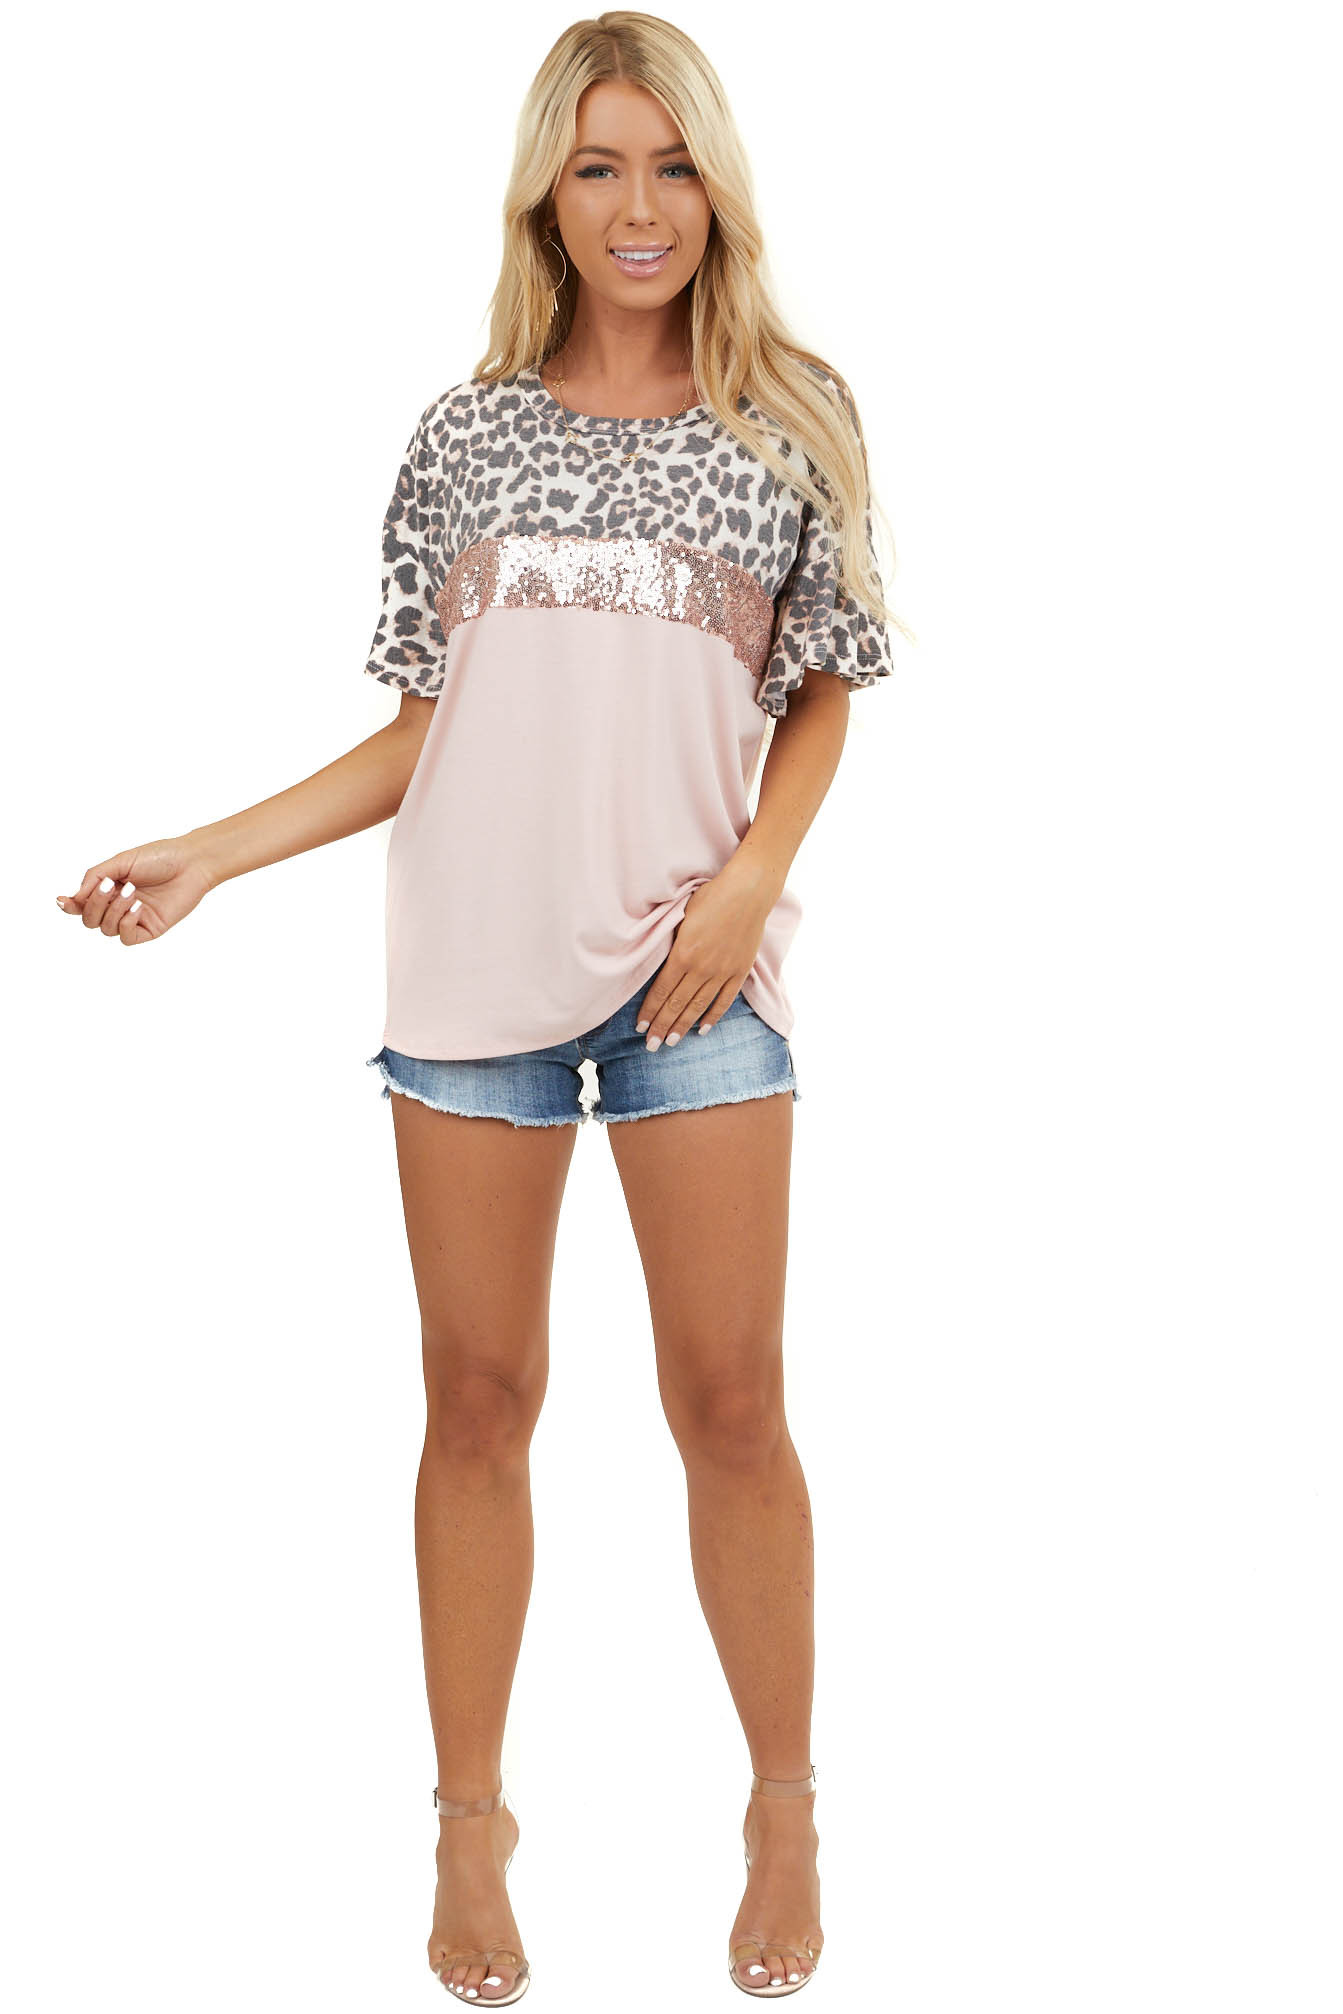 Blush Leopard Print and Sequins Colorblock Short Sleeve Top